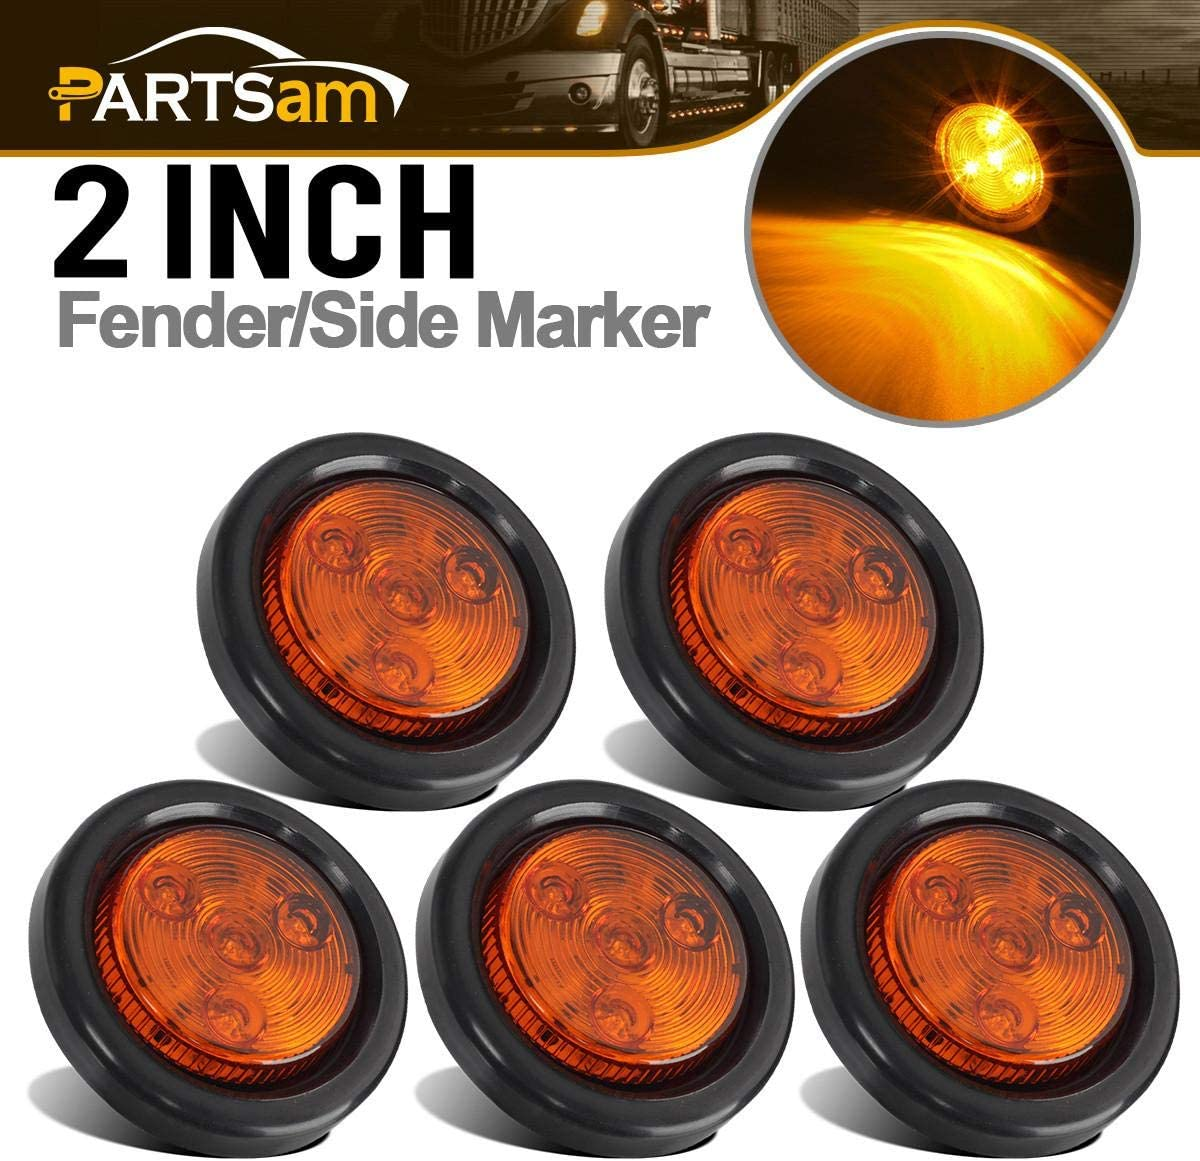 Pair of LED 2.5 Round Amber Clearance//Side Marker Lights with Grommets and 2 Pole Wire Connectors for Trucks RVs Trailers